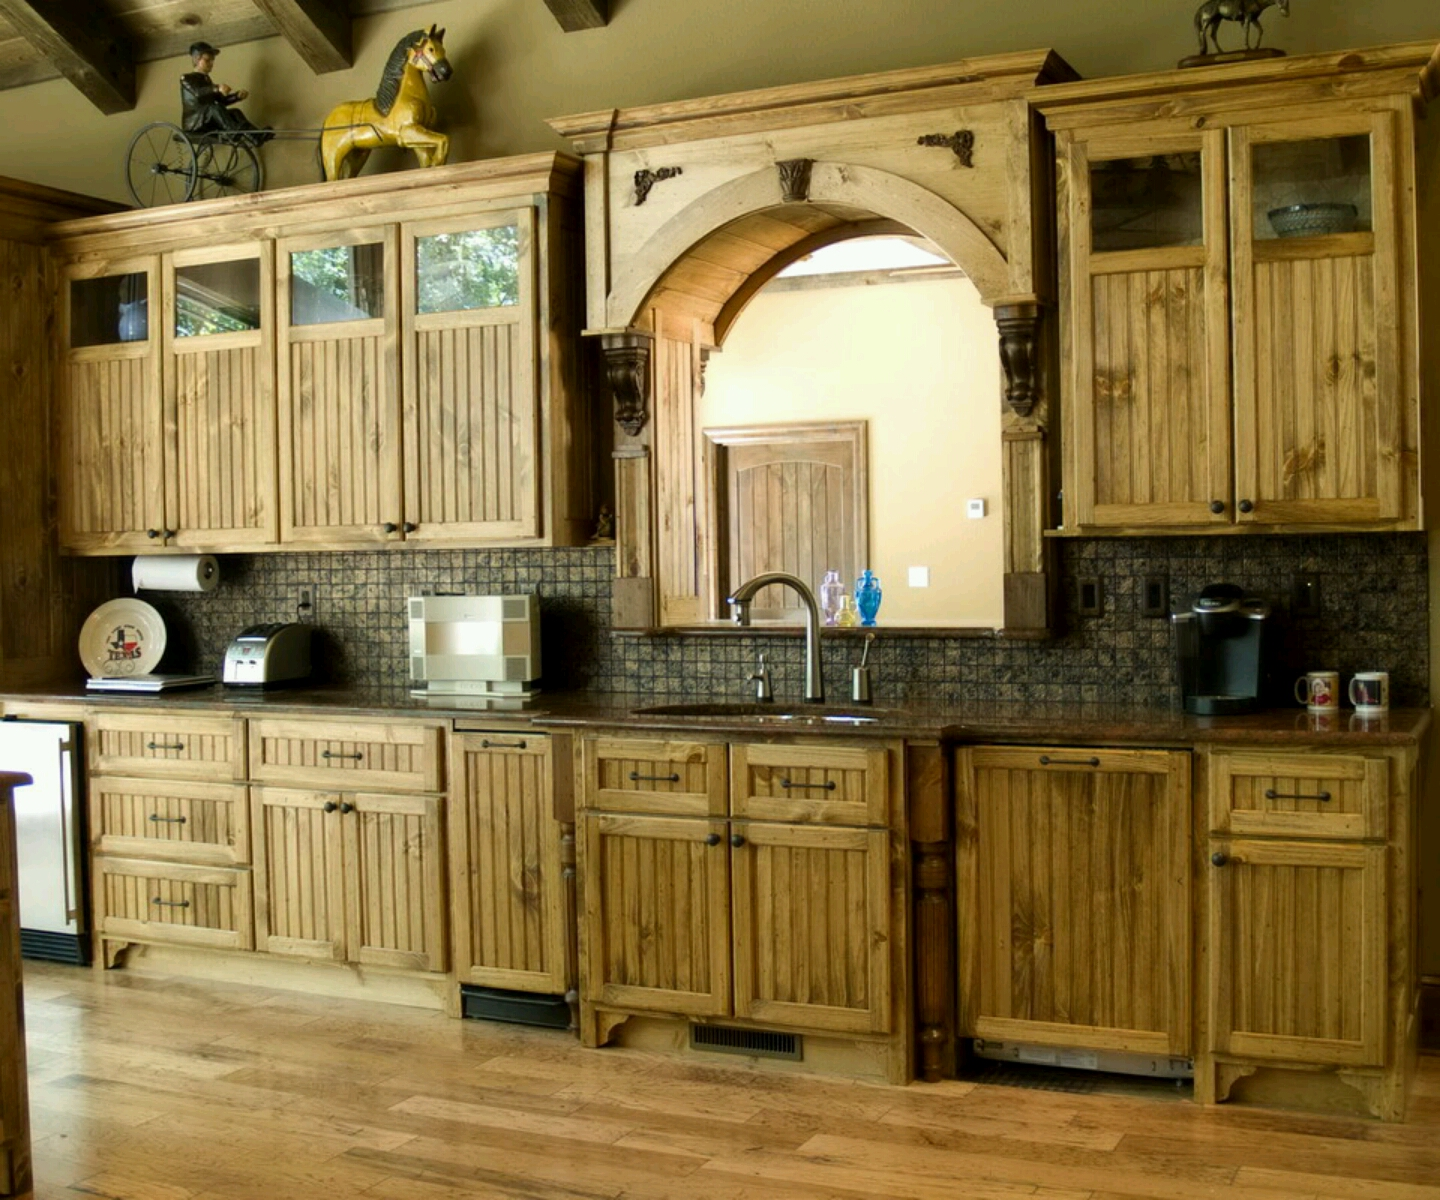 Modern wooden kitchen cabinets designs furniture gallery for Modern kitchen cabinets design ideas